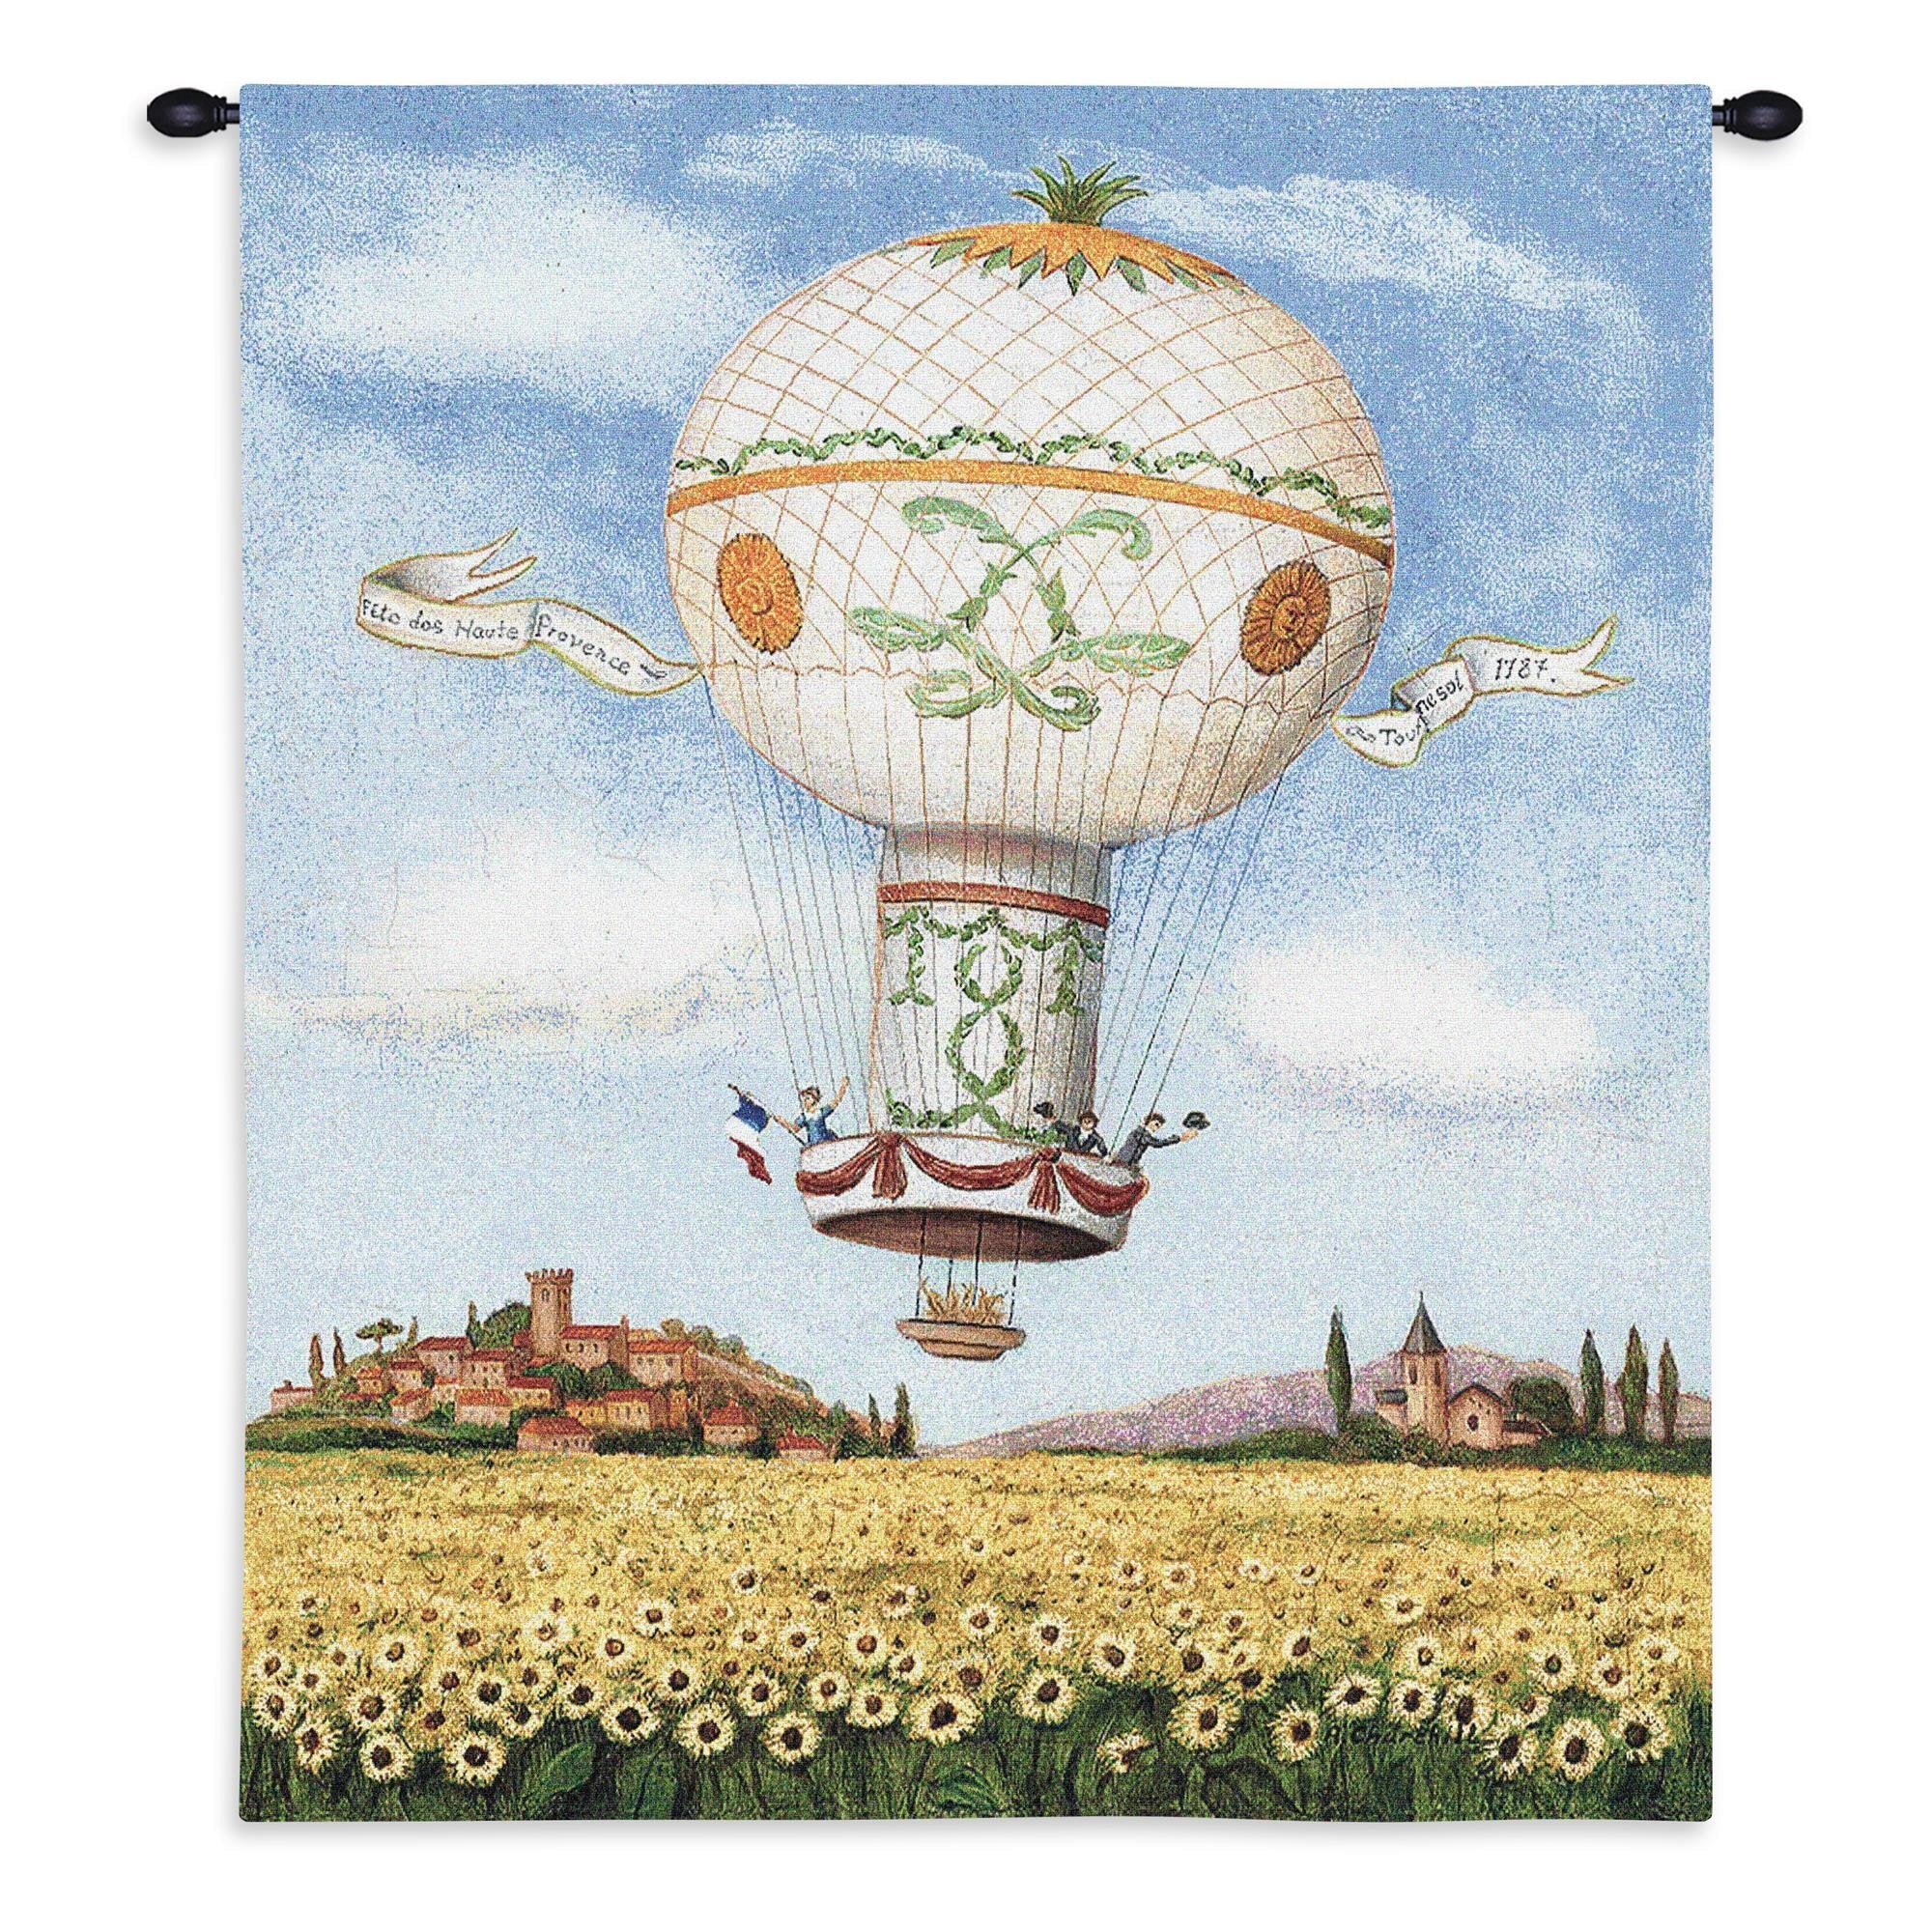 Hot Air Balloon Flight Over Sunflowers Wall Decor